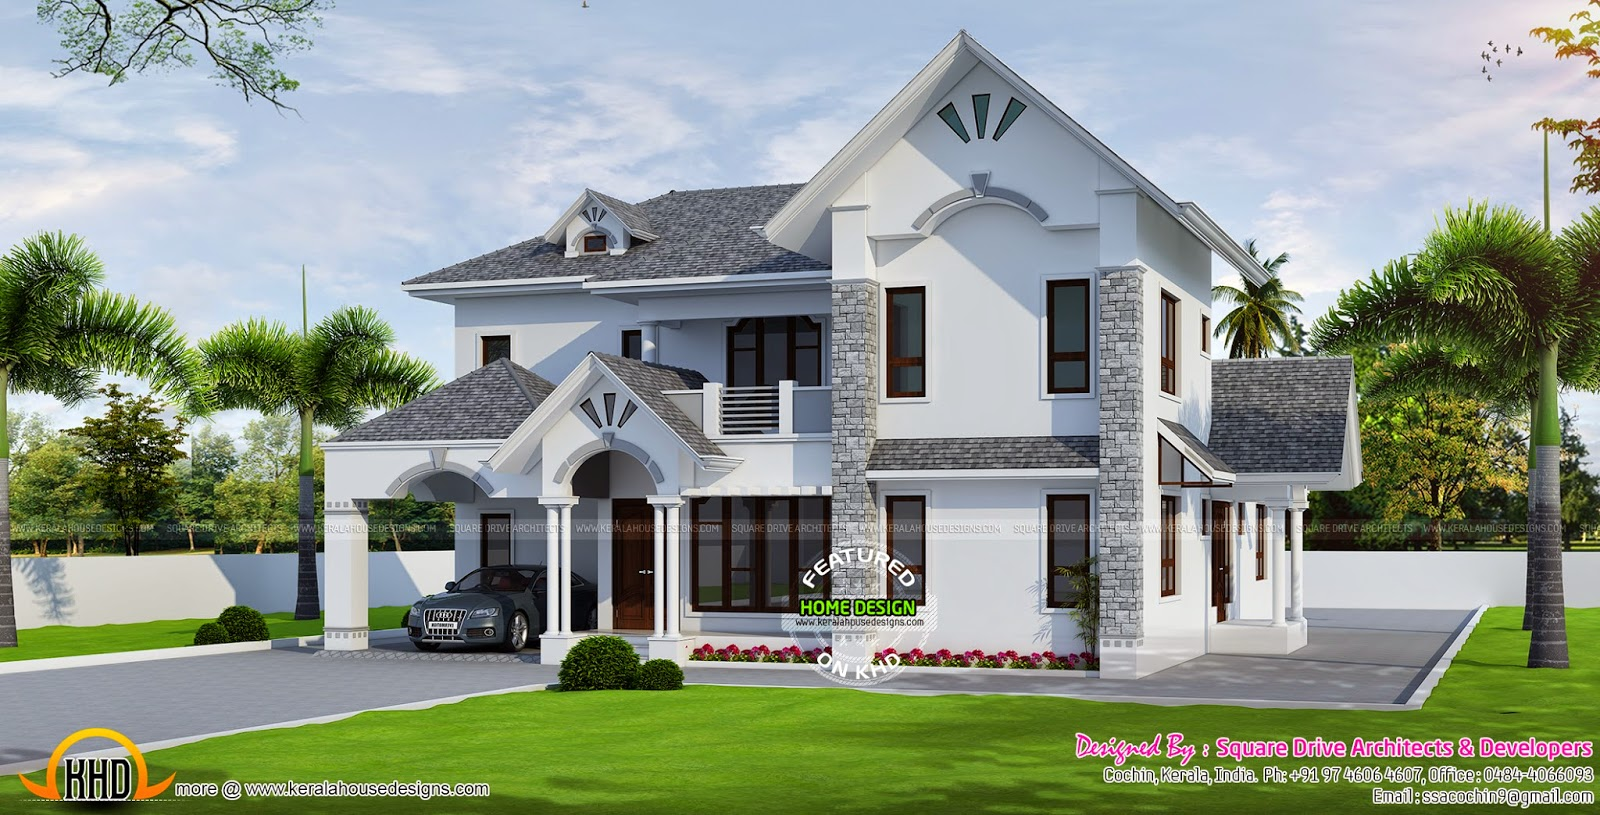 House design european style house design ideas Europe style house